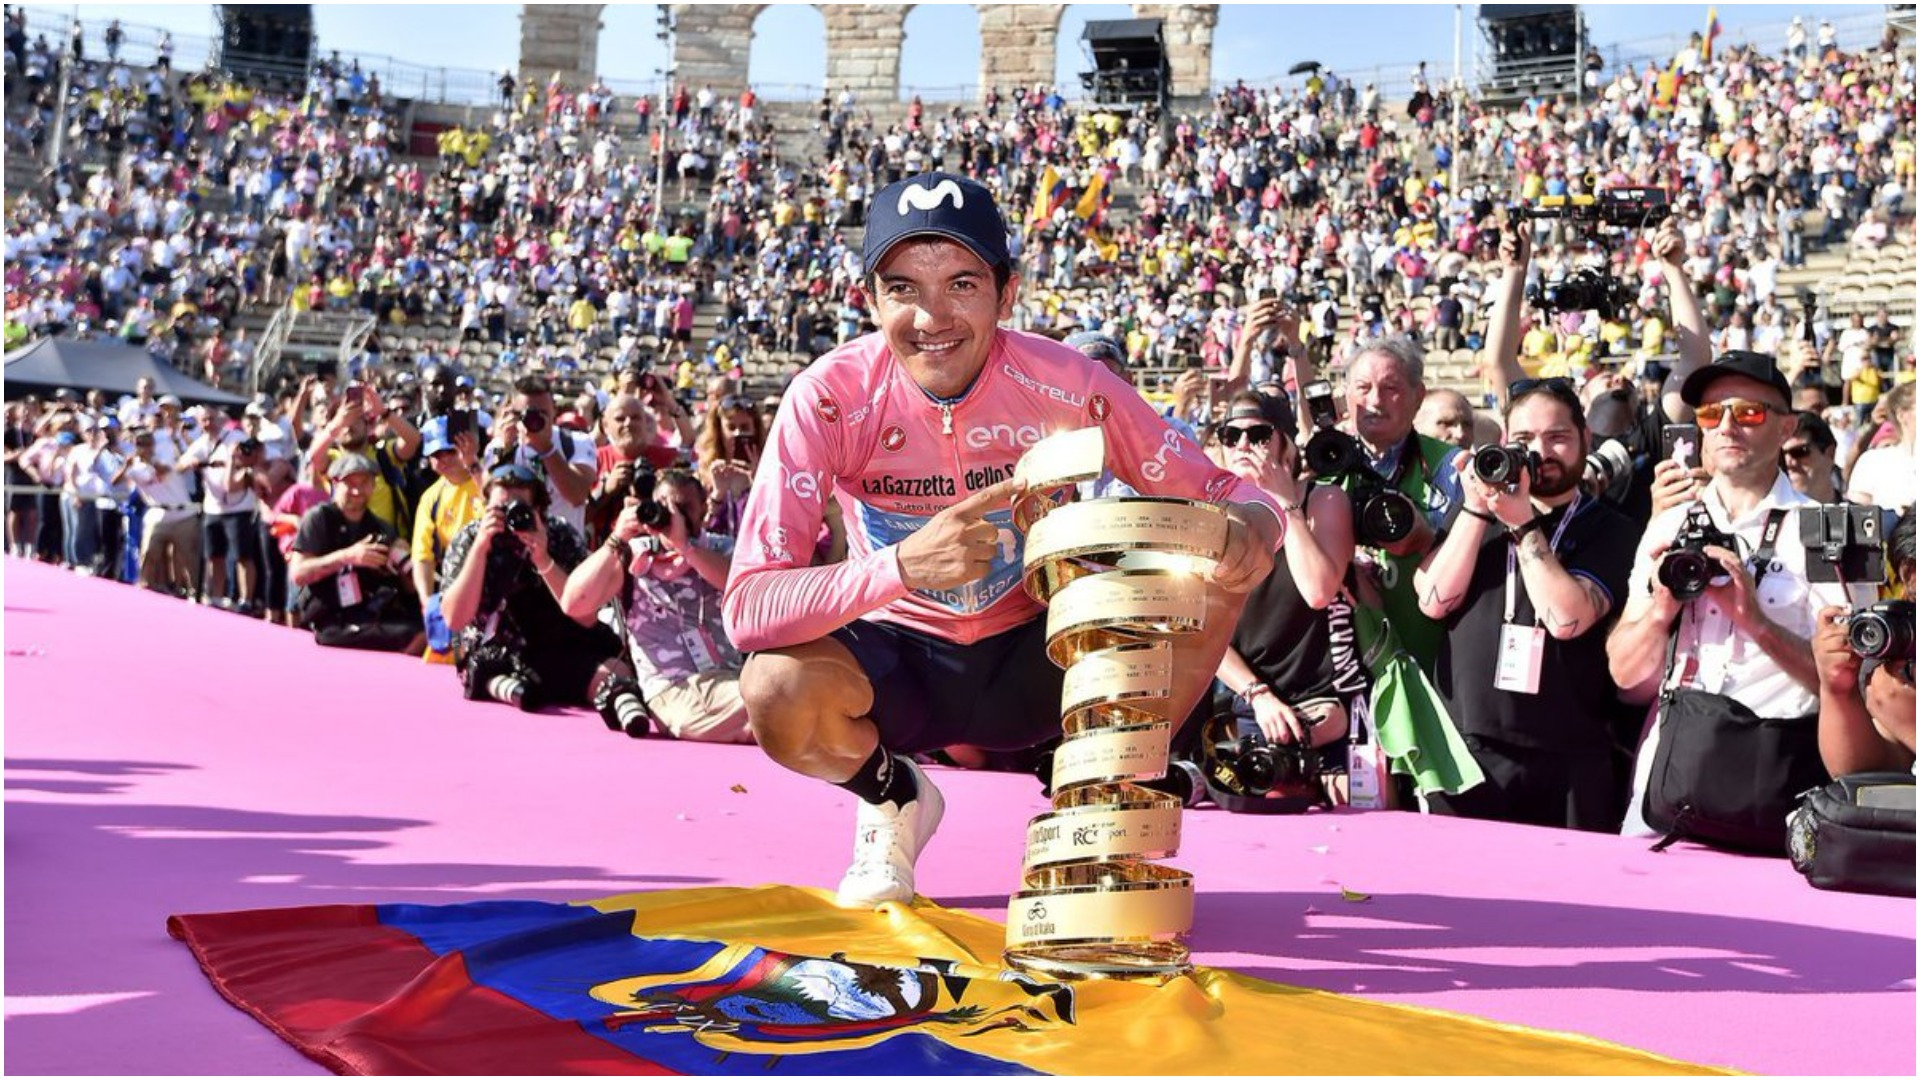 An unexpected victory at the Giro d'Italia saw Richard Carapaz become the first Ecuadorian to win a Grand Tour.